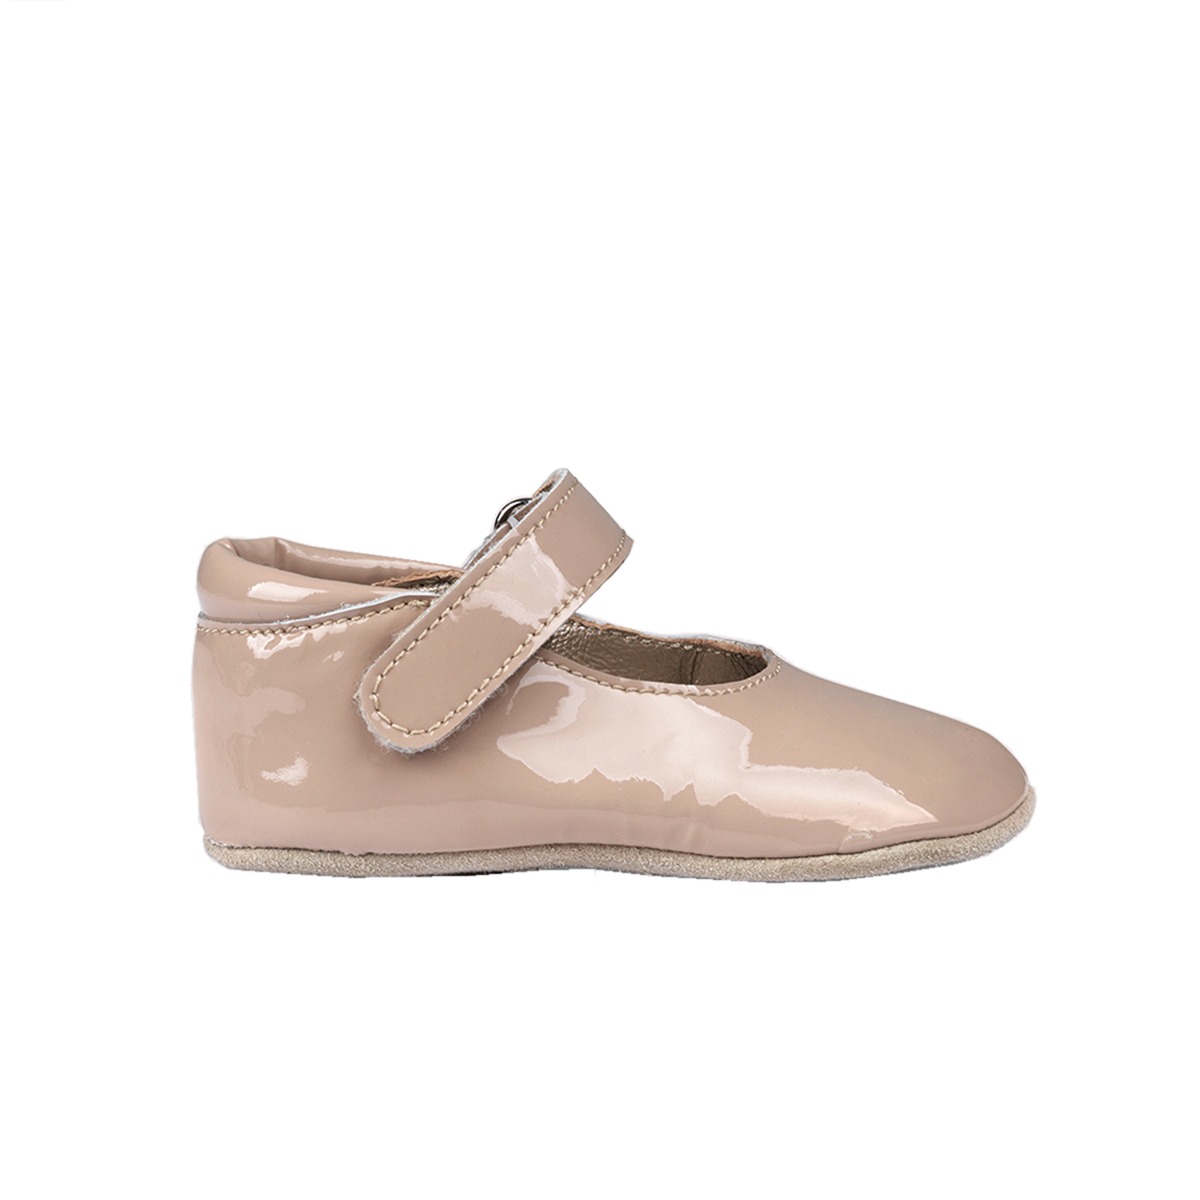 Petit Nord Patent Ballerina with Velcro Strap in Pale Rose